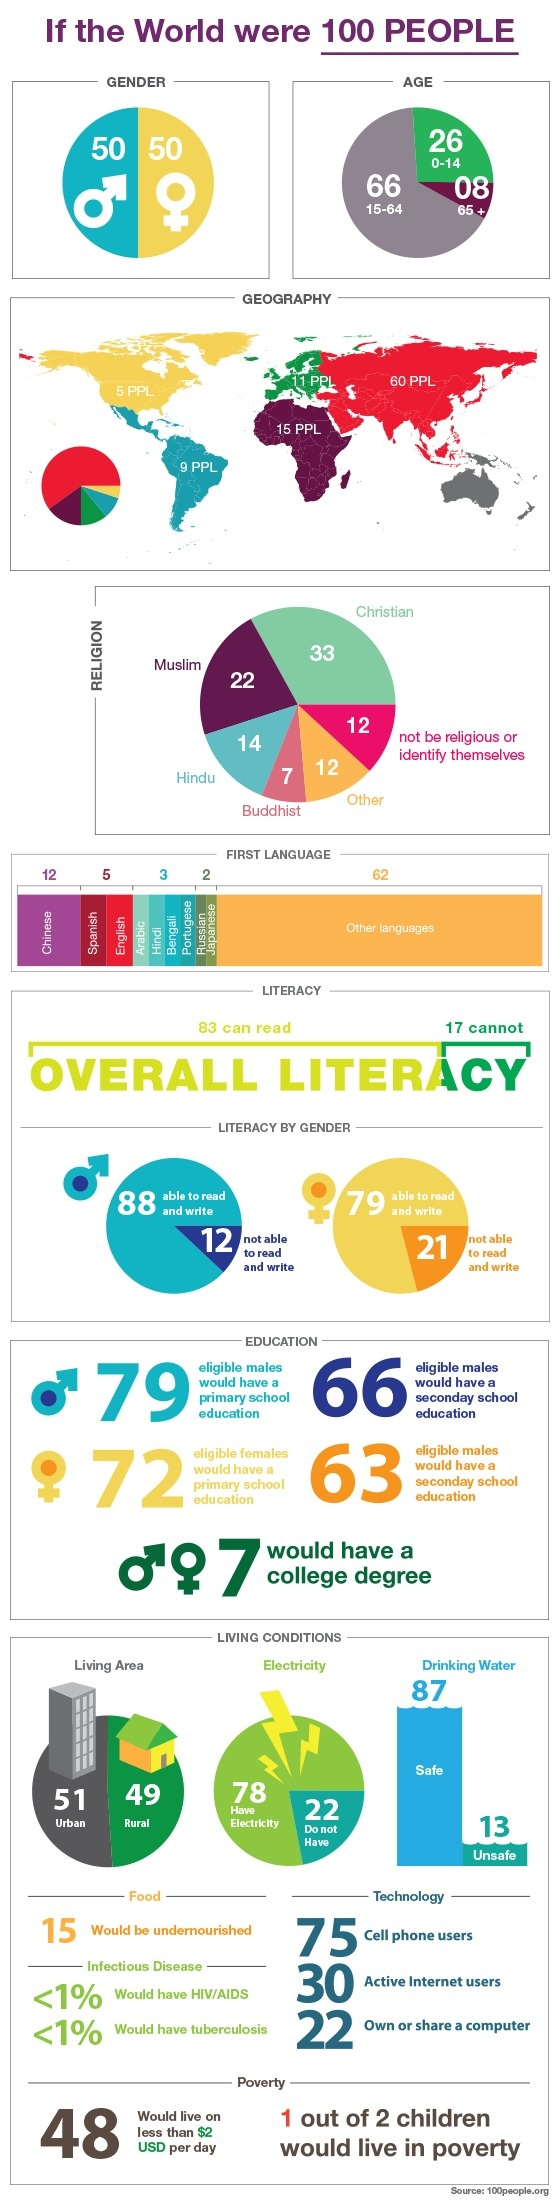 If The World Were 100 People [infographic] would be a great poster for a math room.